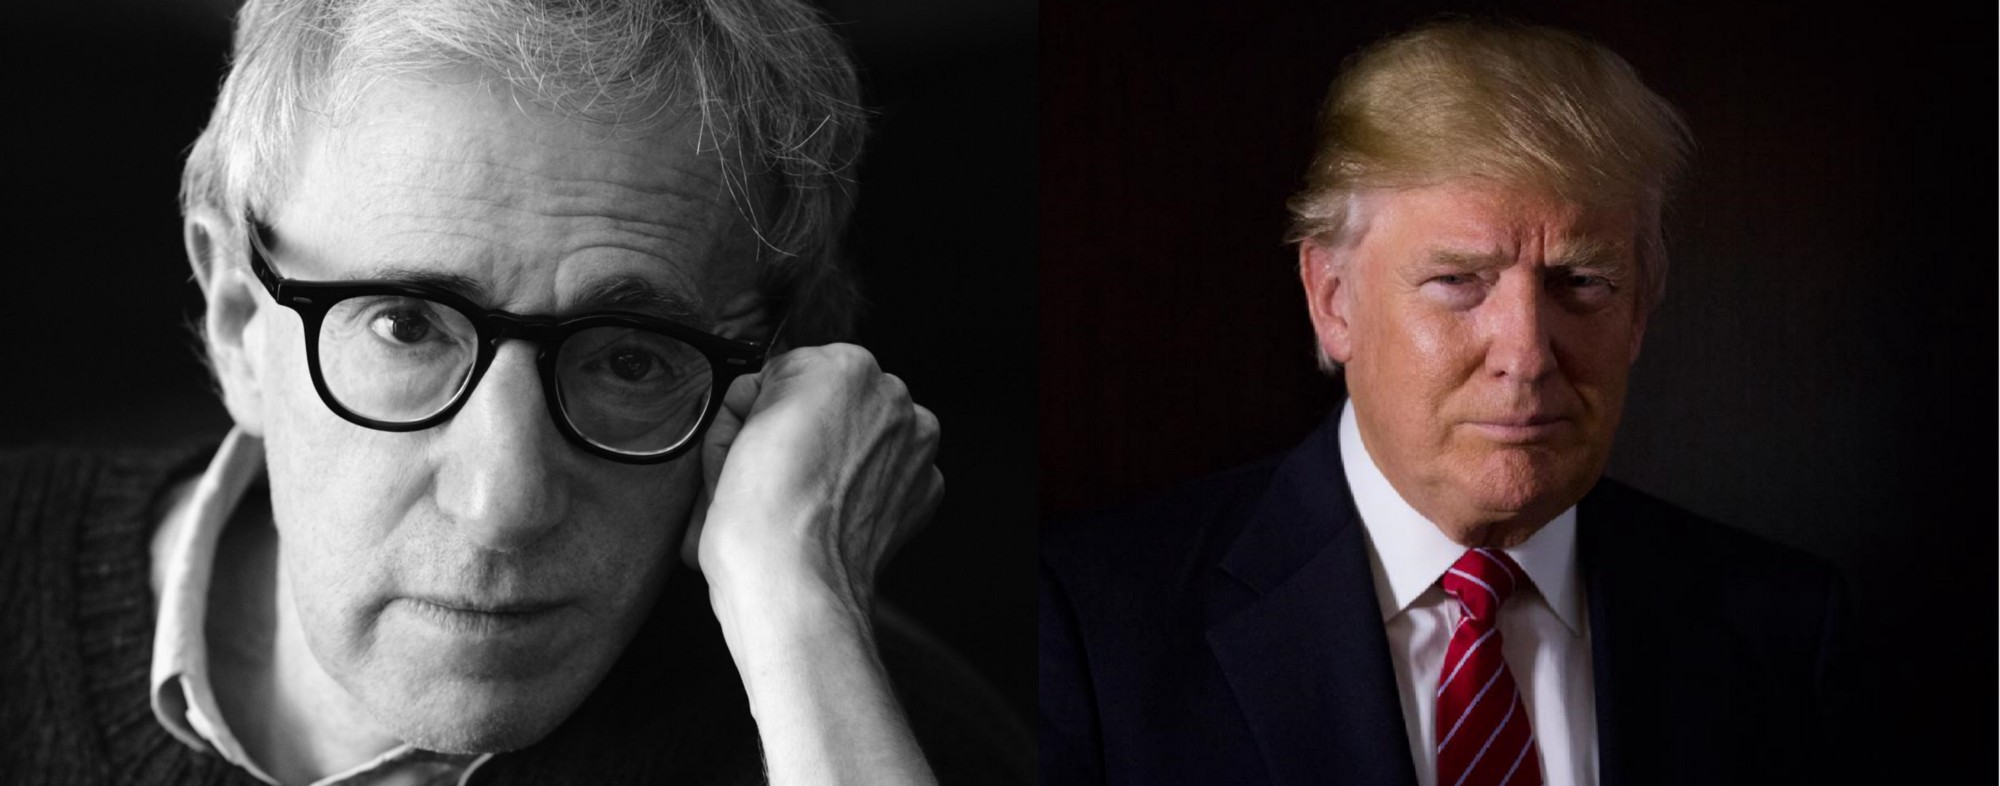 Trump Mistakes Paris Agreement For Woody Allen Movie